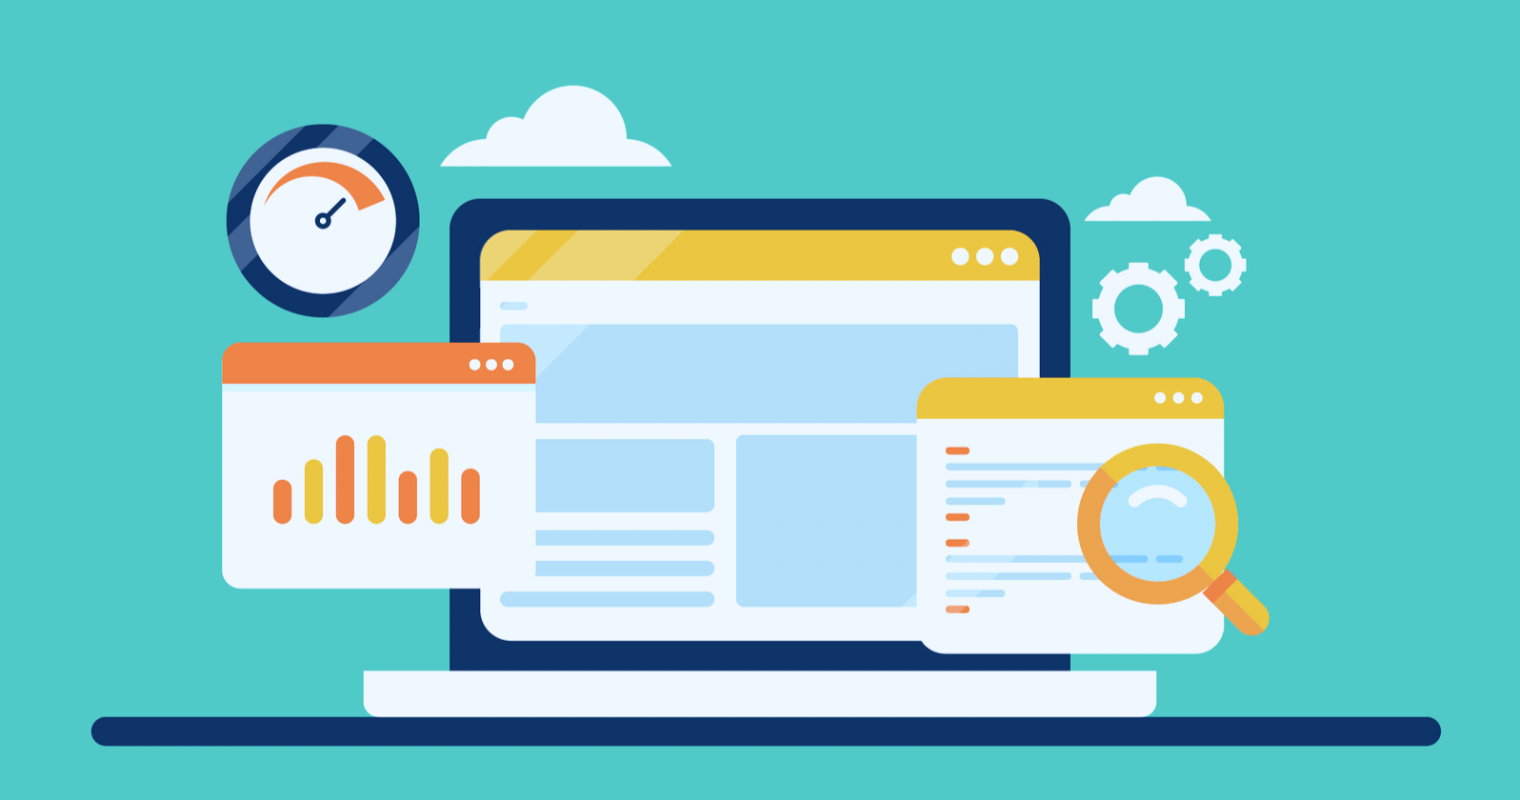 How Does a Page Built Dynamically in Real Time Impact SEO?